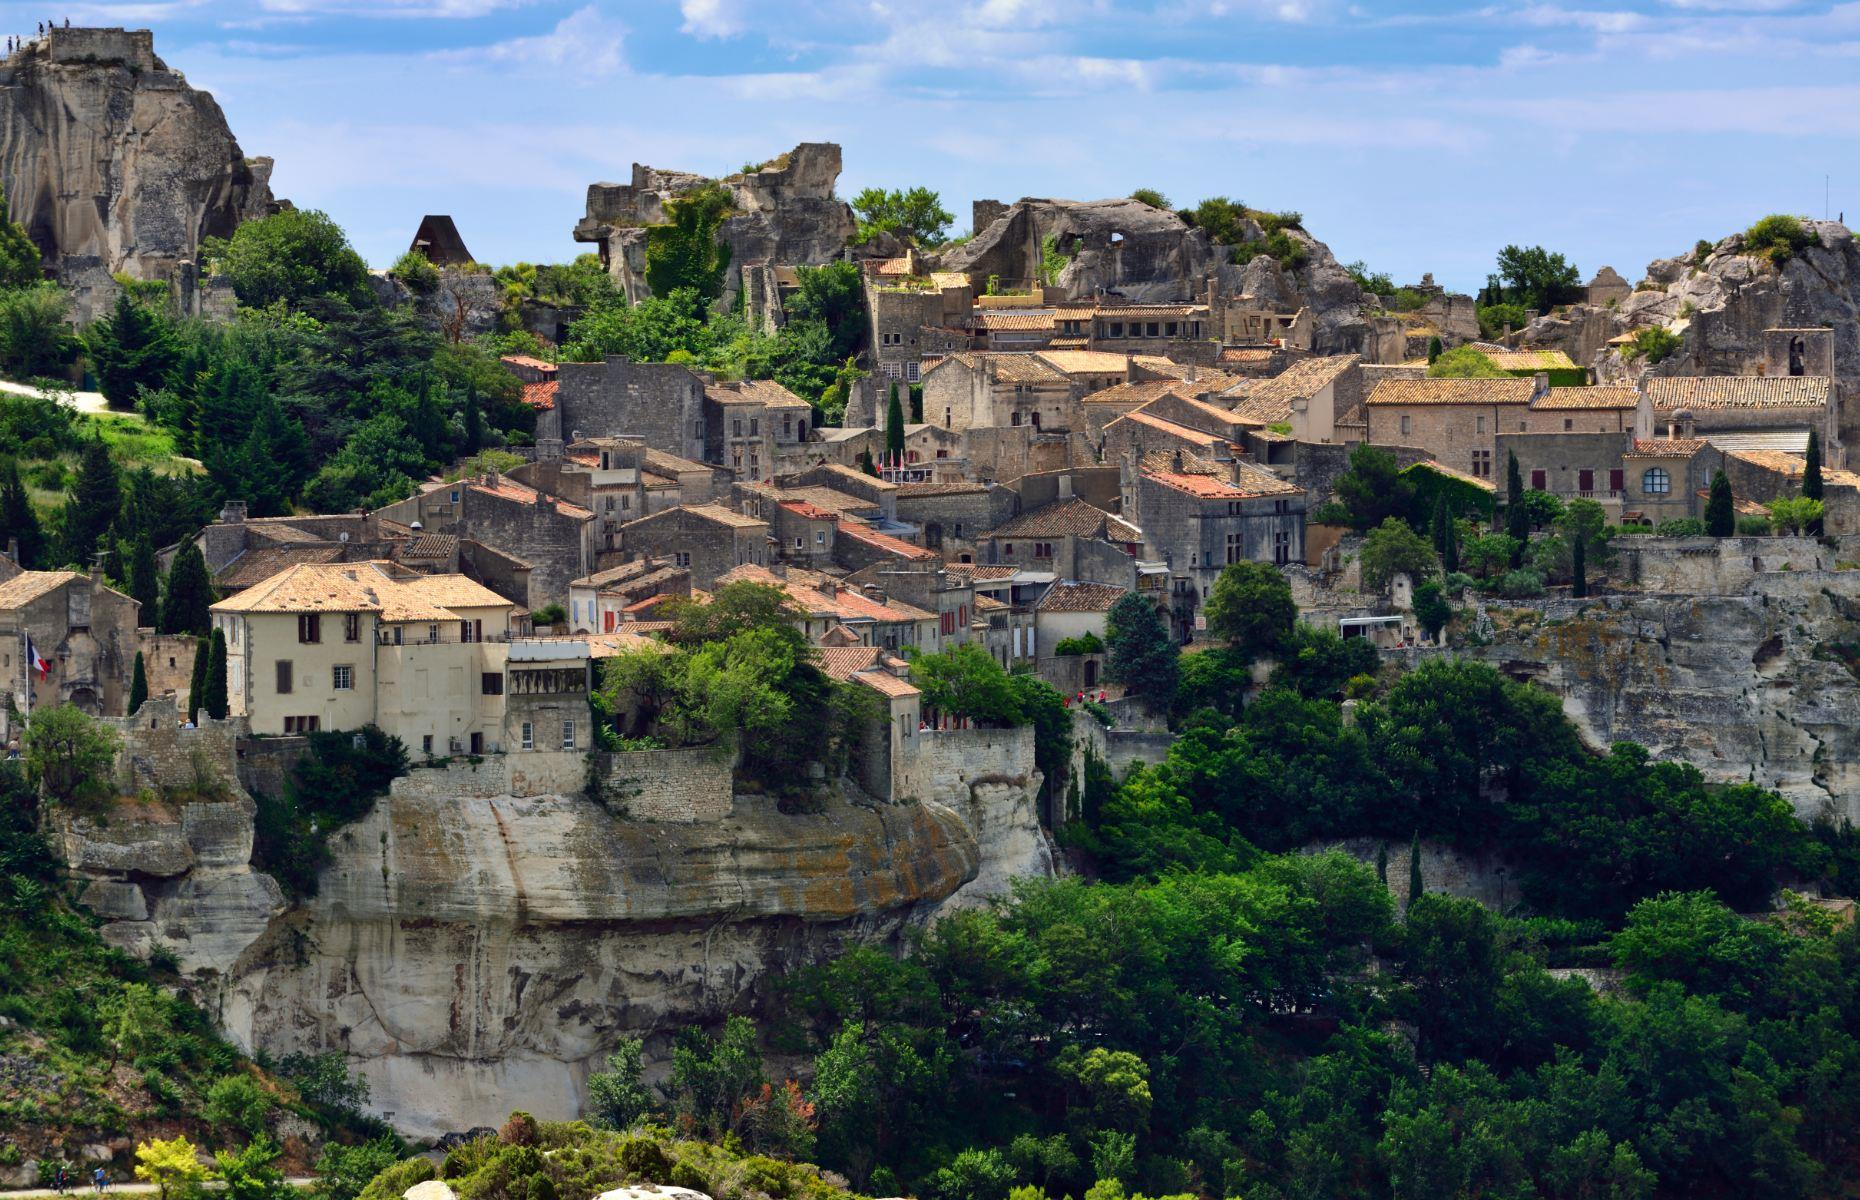 Slide 15 of 37: Perched on a 3,000–foot (900m) rocky formation of the Alpilles hills in Provence, Les Baux-de-Provence towers above the Crau and the Camargue regions like a beacon. At the top of the rugged escarpment, the ruins of its namesake medieval citadel dominate the nearby olive groves, vineyards and the La Fountaine valley. Beneath its looming fortress, Renaissance houses decorate its centerwhilehoteliers, restaurateurs, oil and wine producers and artists have given the lovely village a new lease of life. Love small towns? These are Canada's finest too.